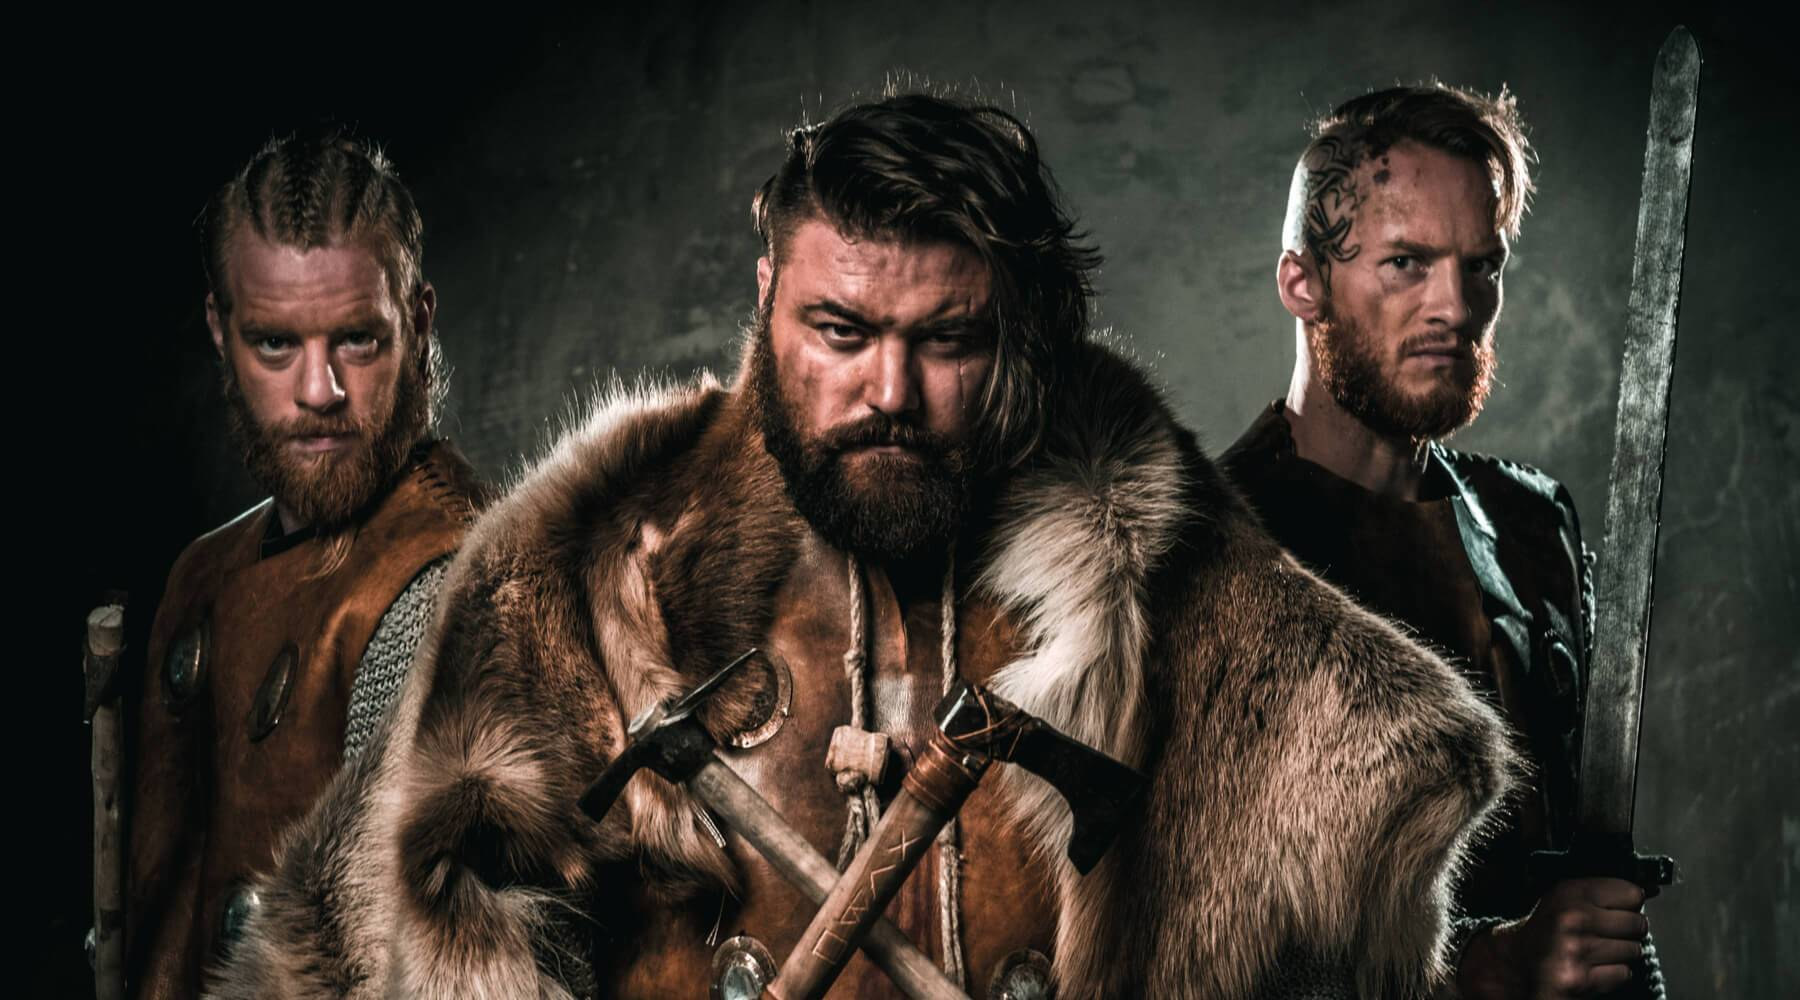 Three Vikings in different Vikings clothing